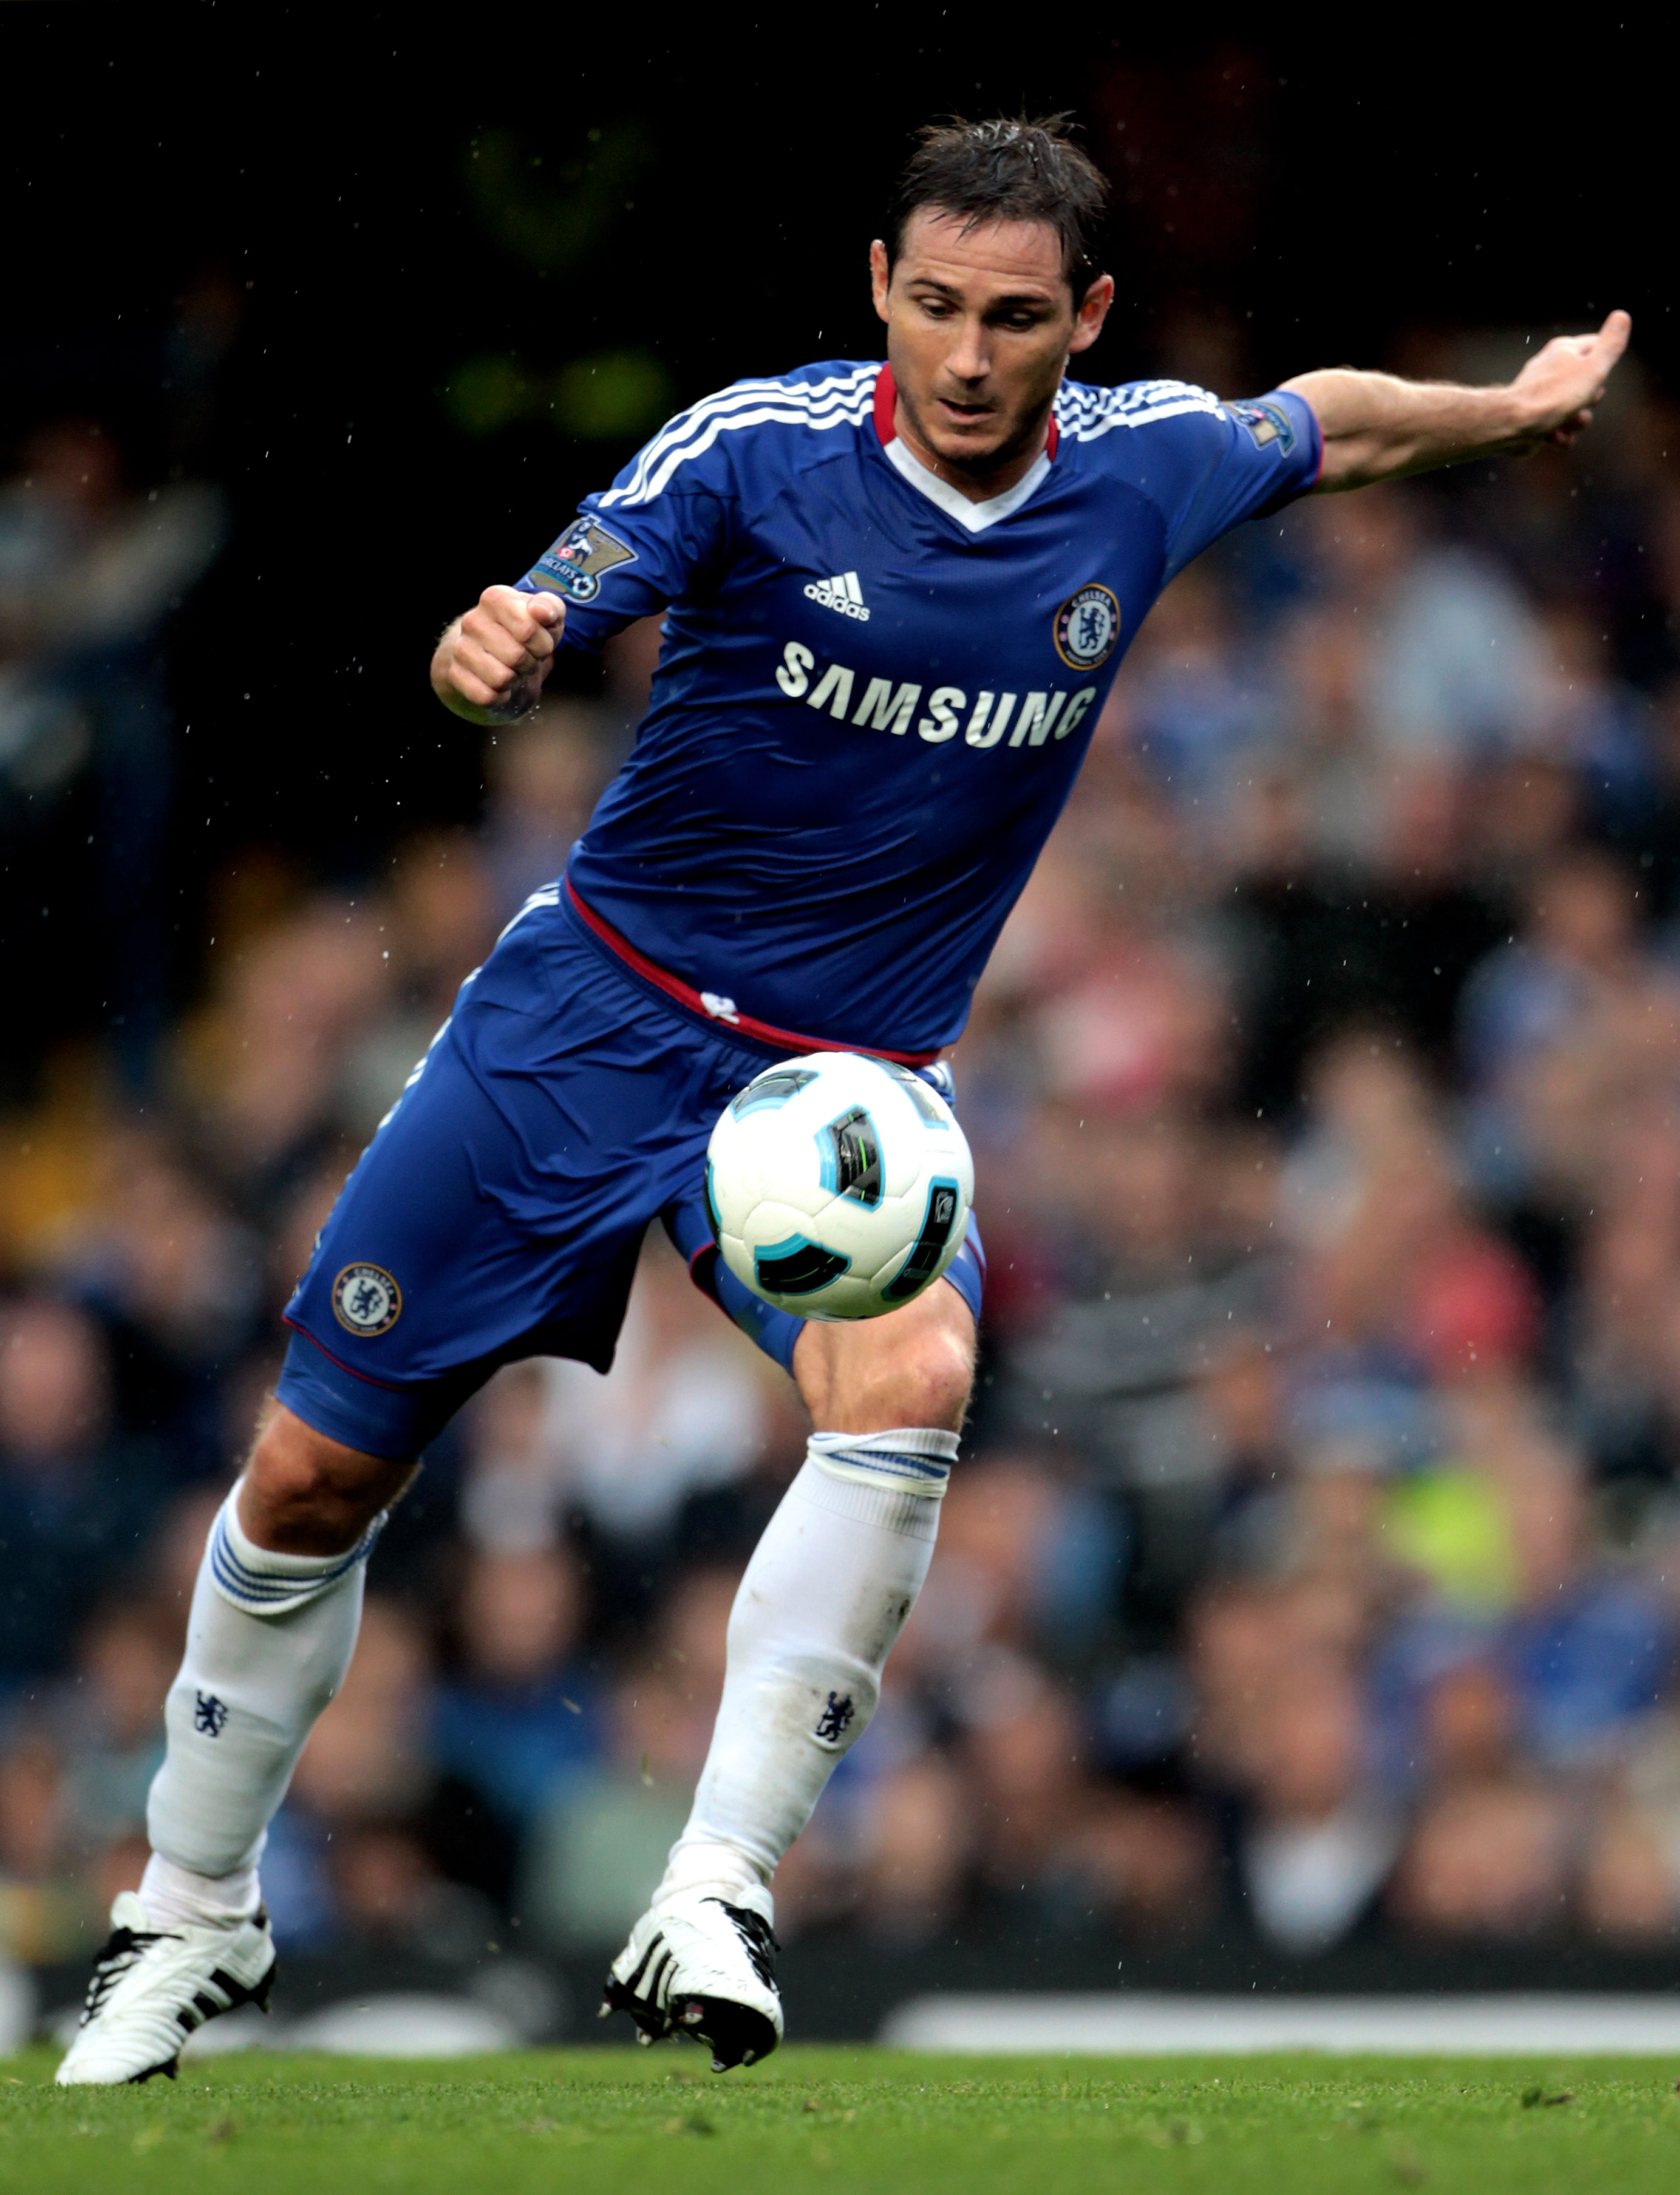 LONDON, ENGLAND - AUGUST 14:  Frank Lampard of Chelsea shoots on goal during the Barclays Premier League match between Chelsea and West Bromwich Albion at Stamford Bridge on August 14, 2010 in London, England.  (Photo by Phil Cole/Getty Images)